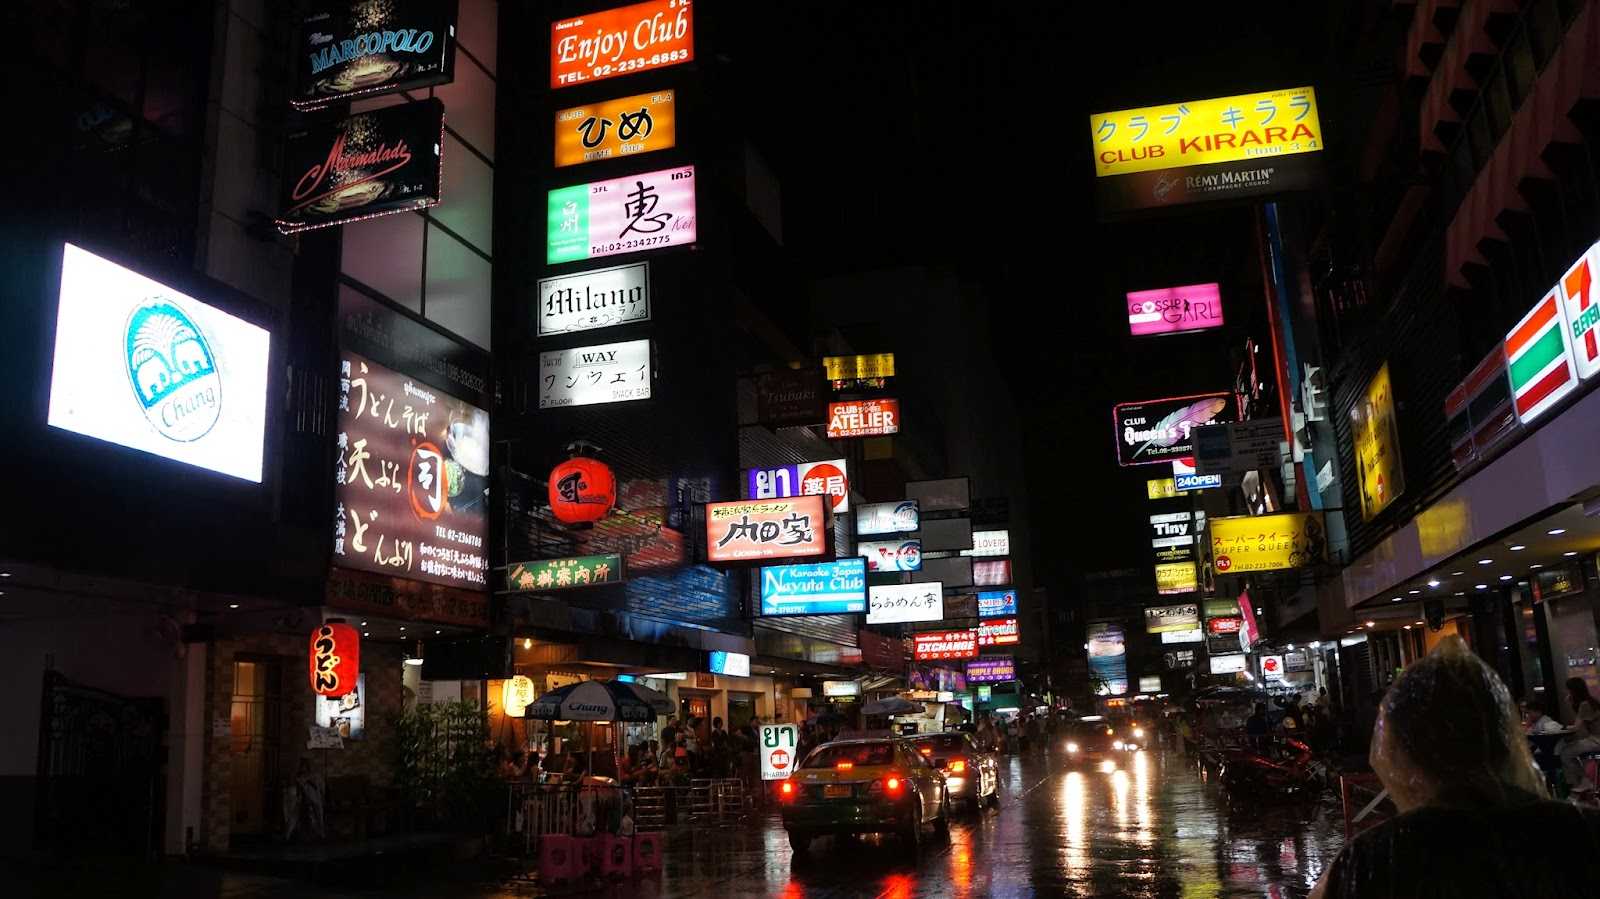 Patpong, one of Bangkok's infamous red light districts